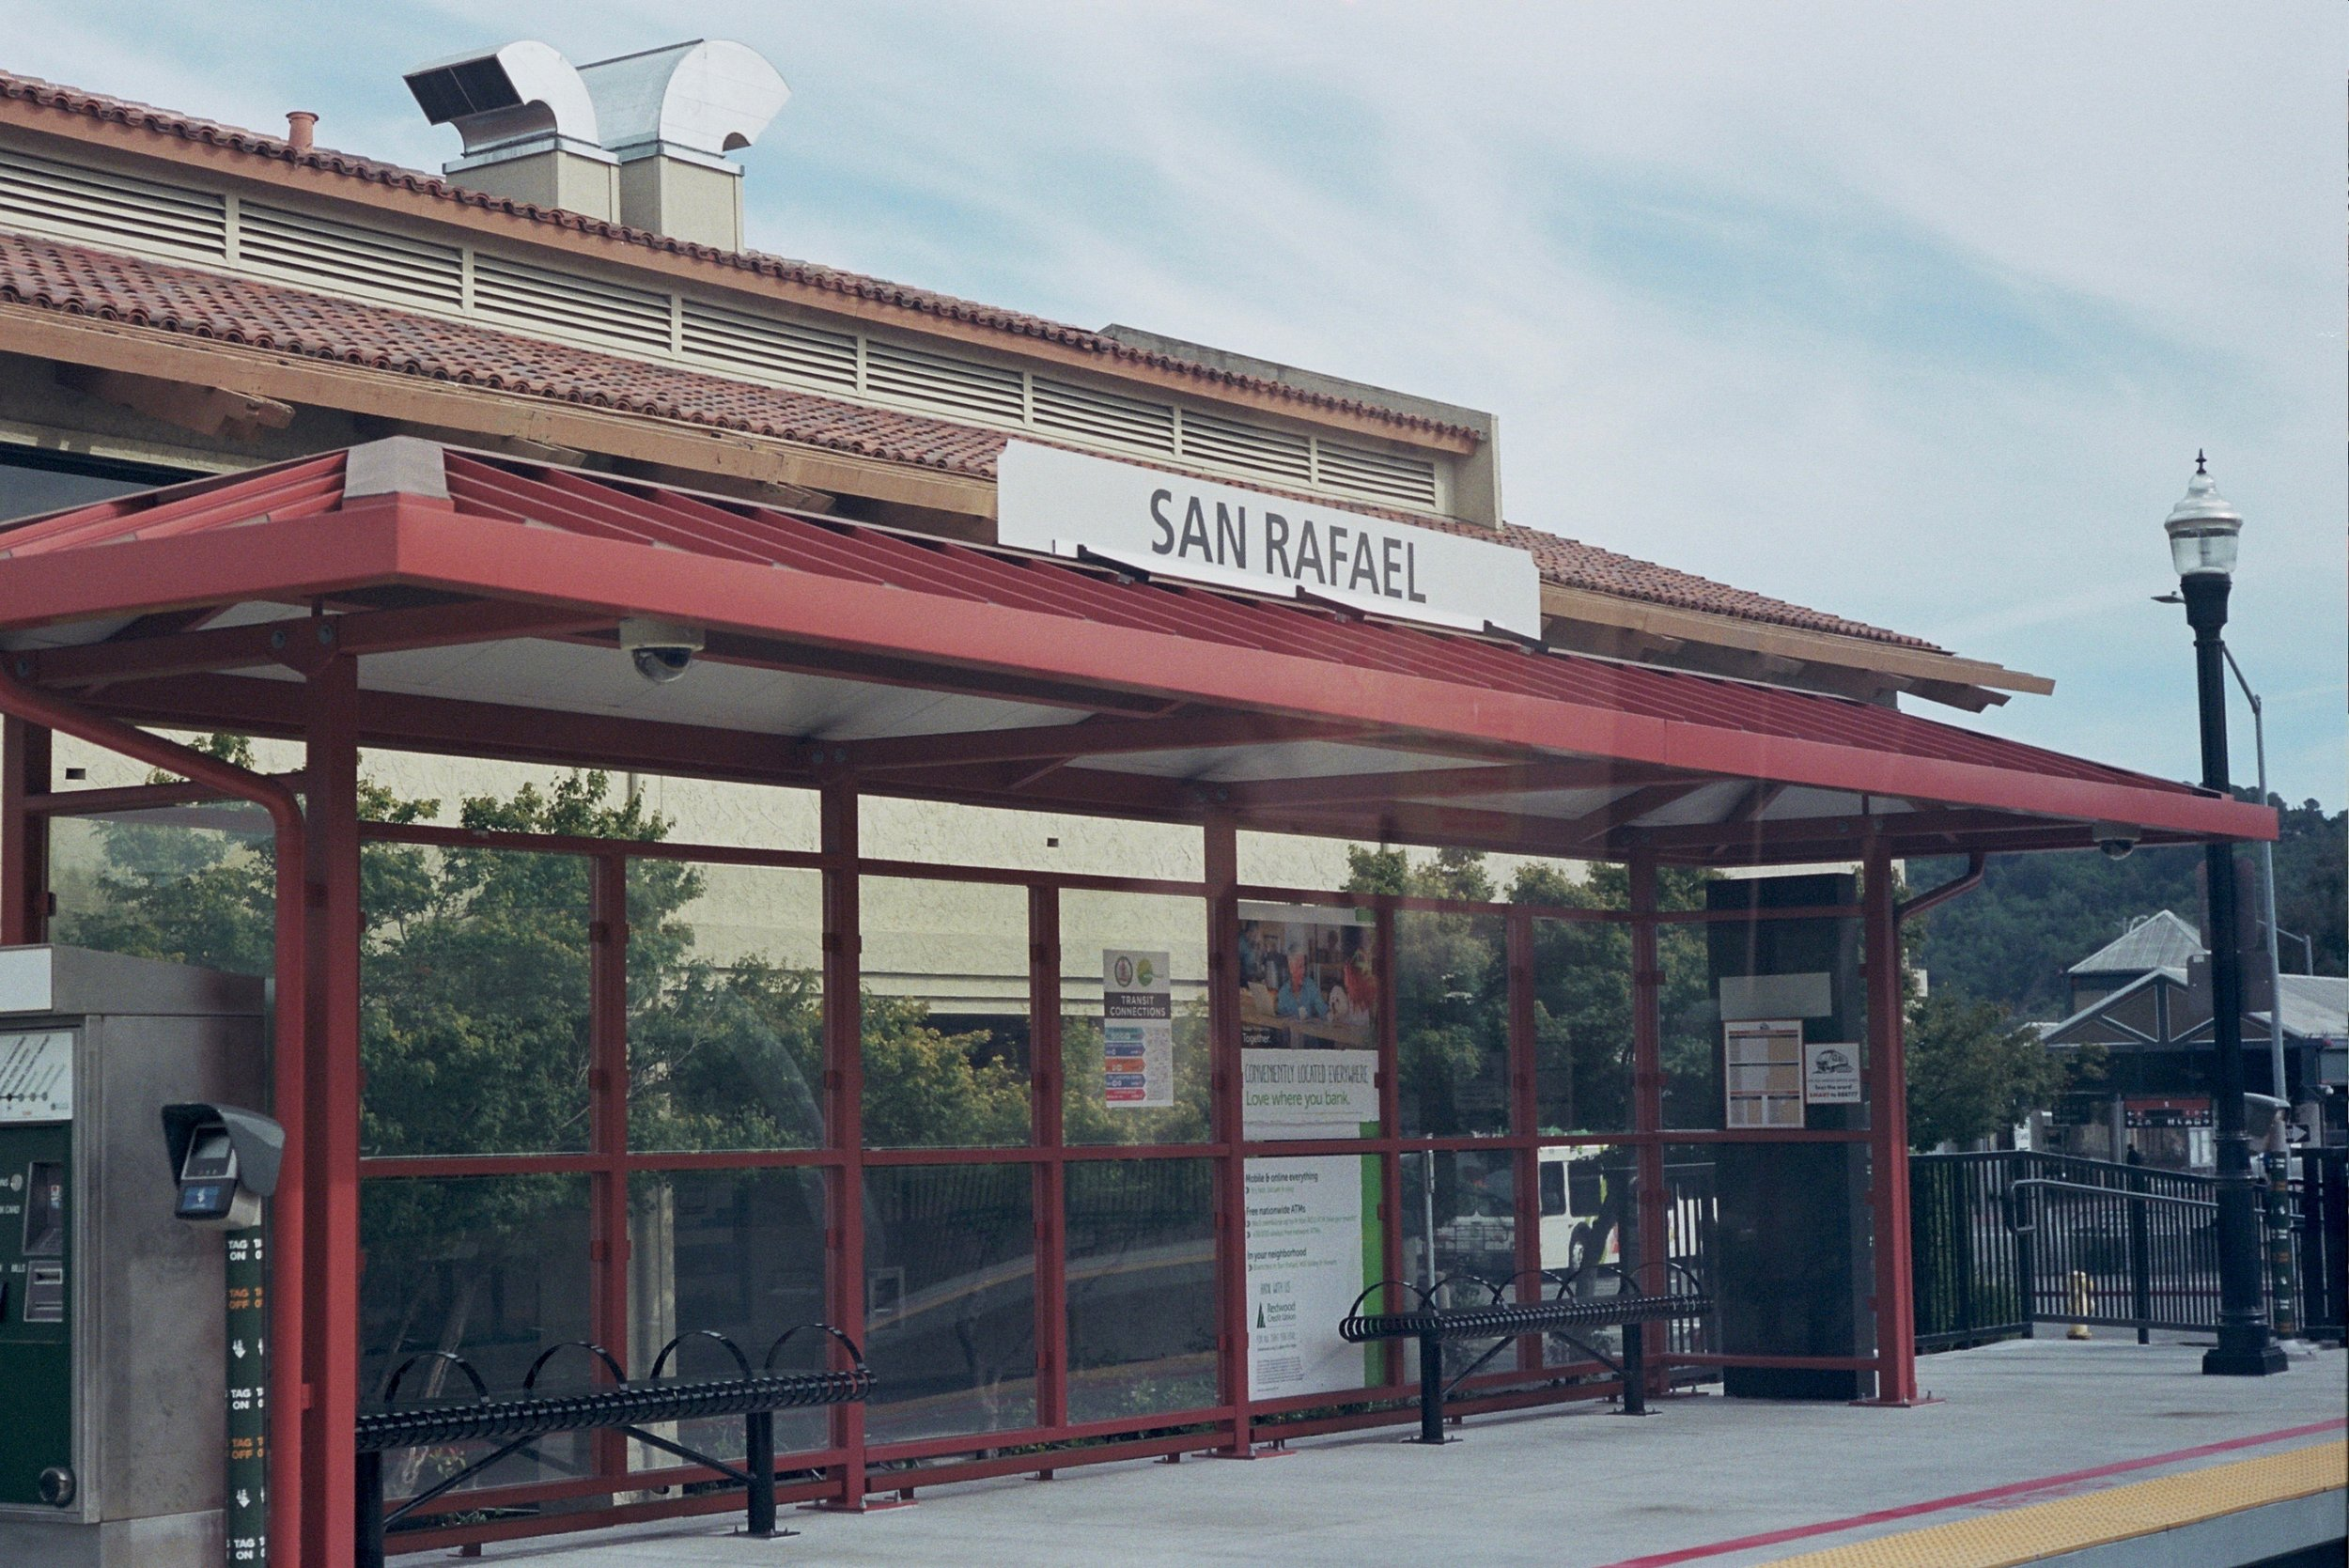 The station in San Rafael through the train window